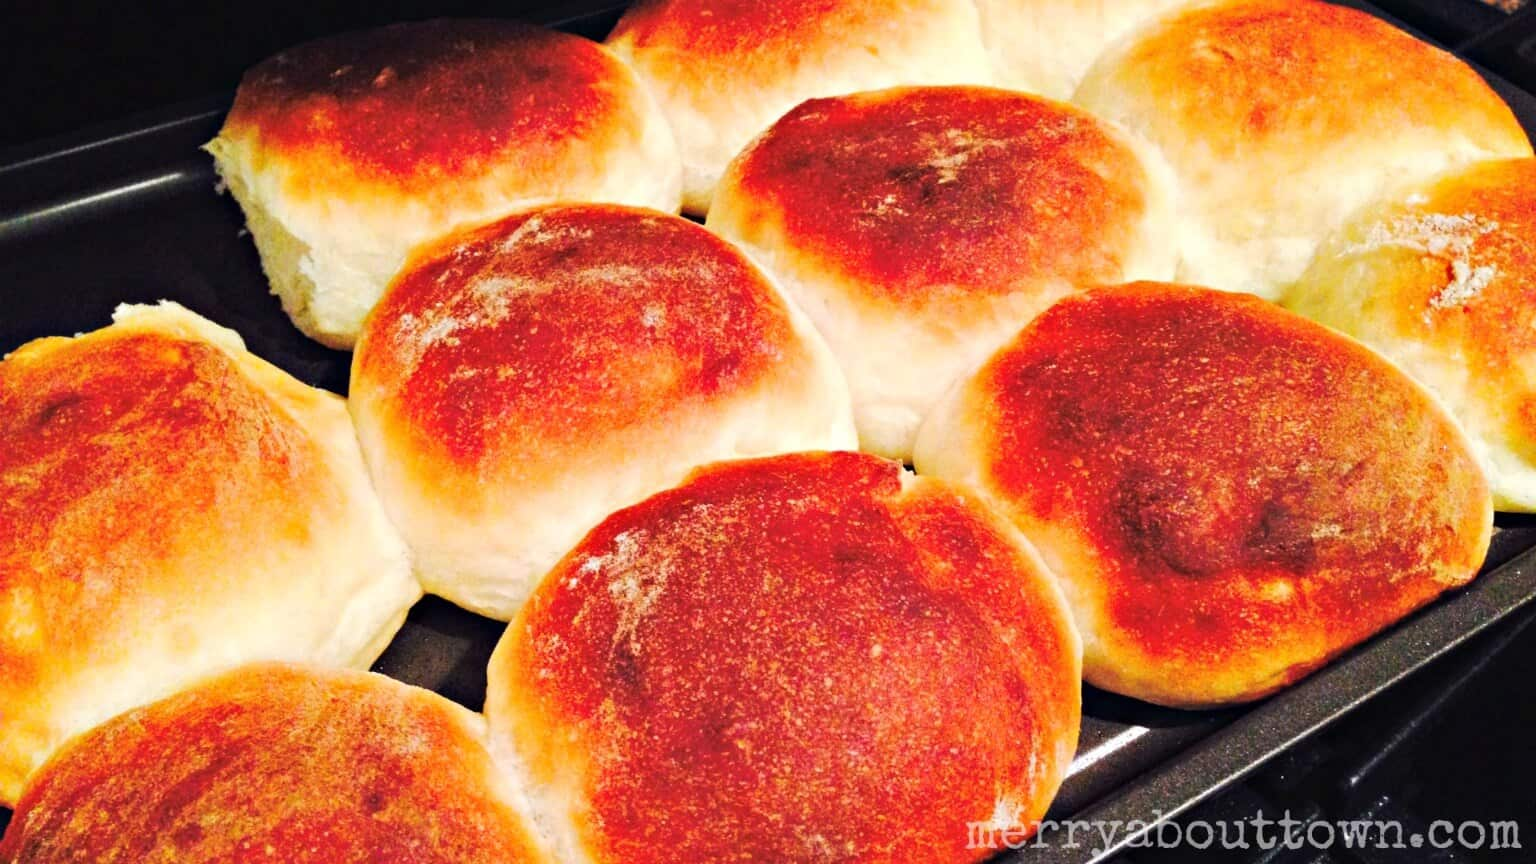 Hutterite Buns - Merry About Town